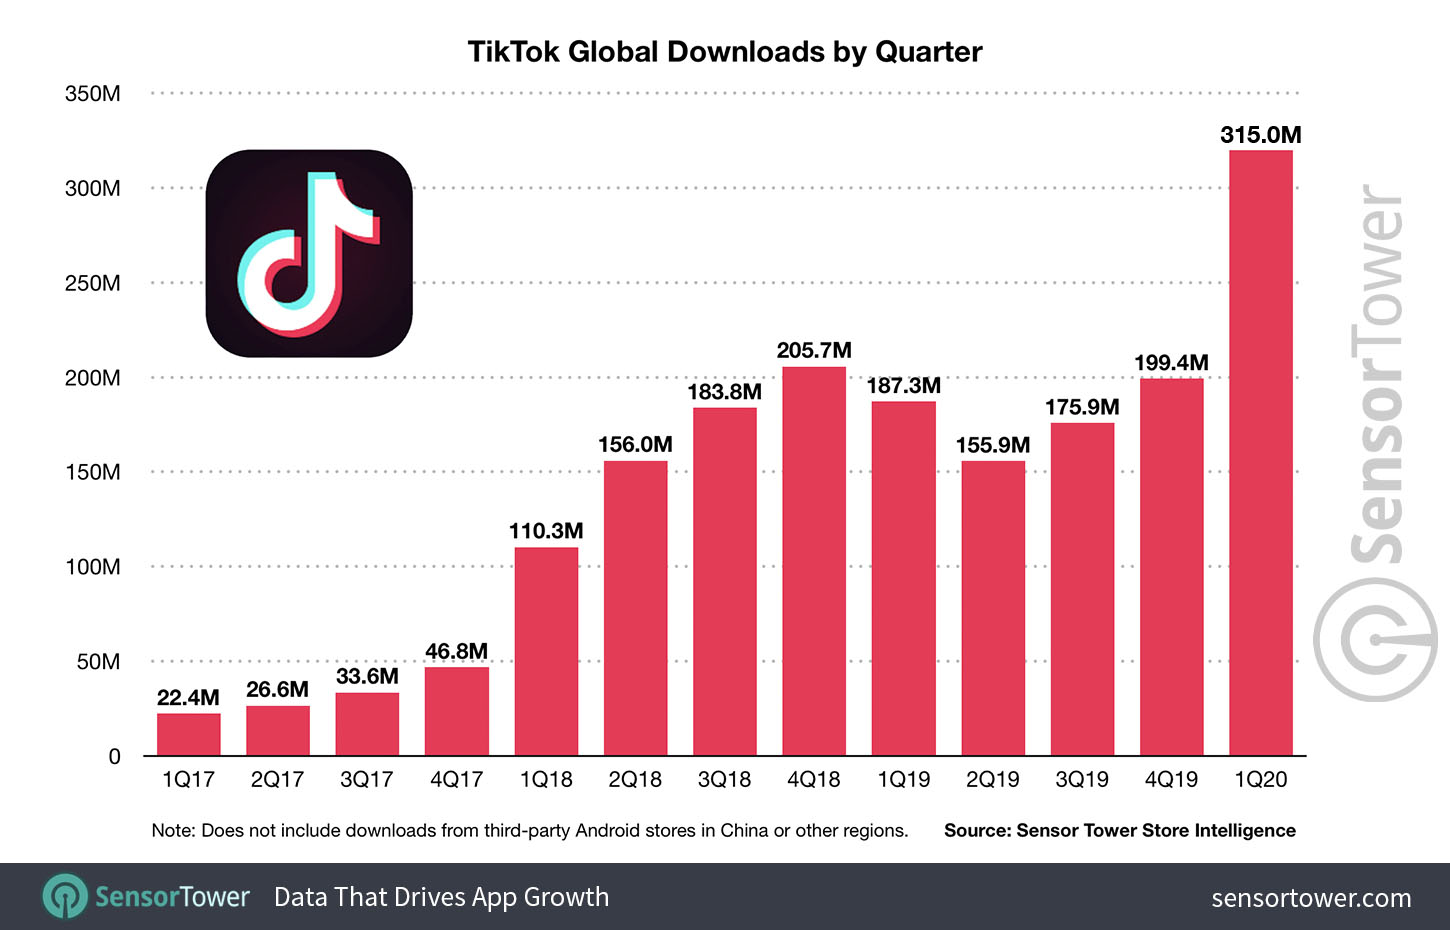 global-tiktok-downloads-by-quarter.jpg